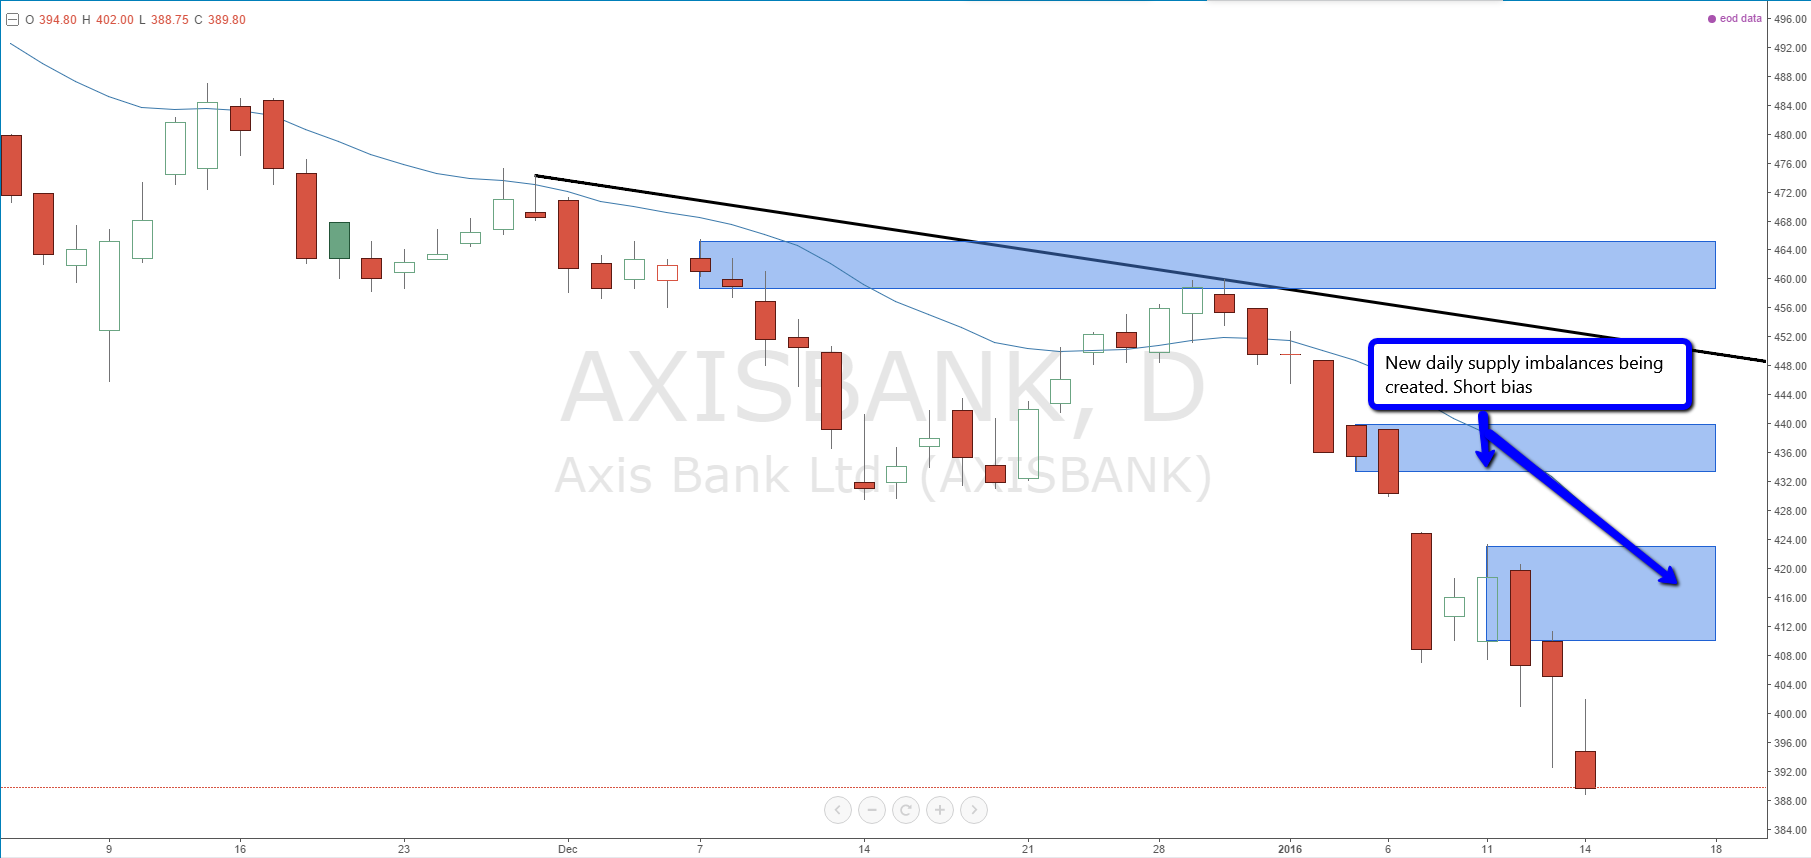 axis_bank_daily